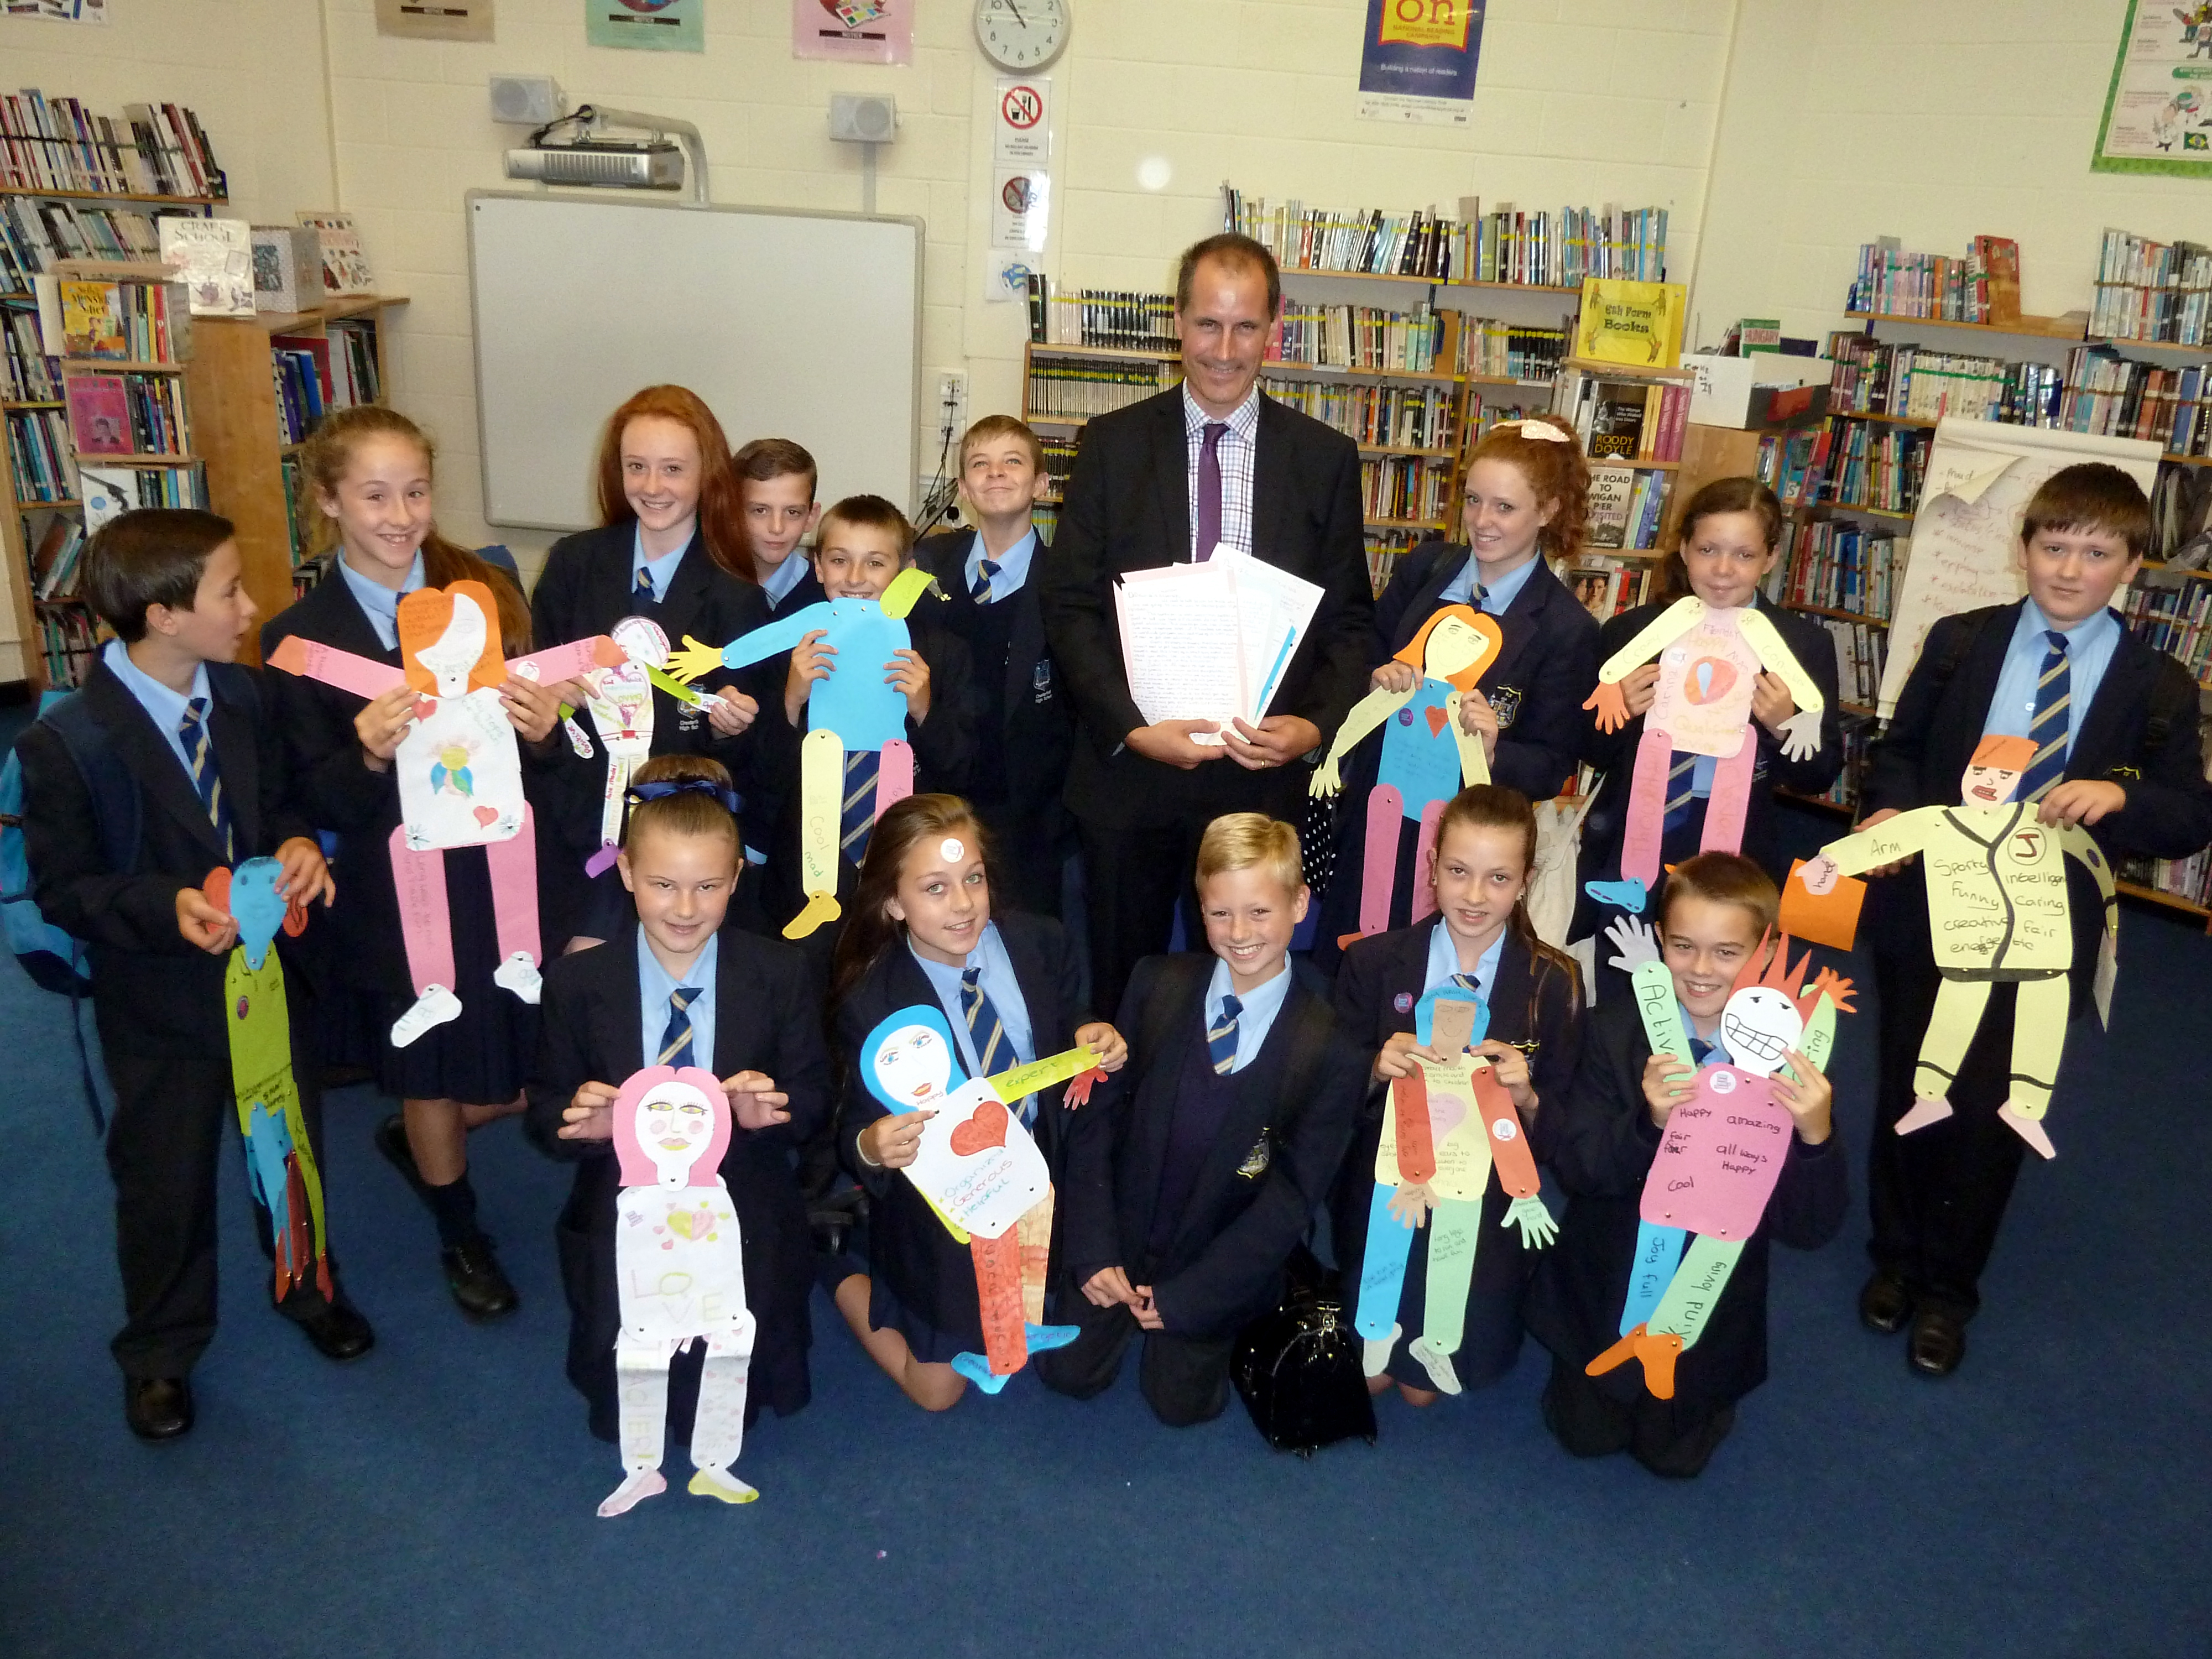 Sefton Central Labour MP Bill Esterson meets Year 8 pupils from Chesterfield High to talk about their campaign to get the world's 61m young people who don't go to school into the classroom.